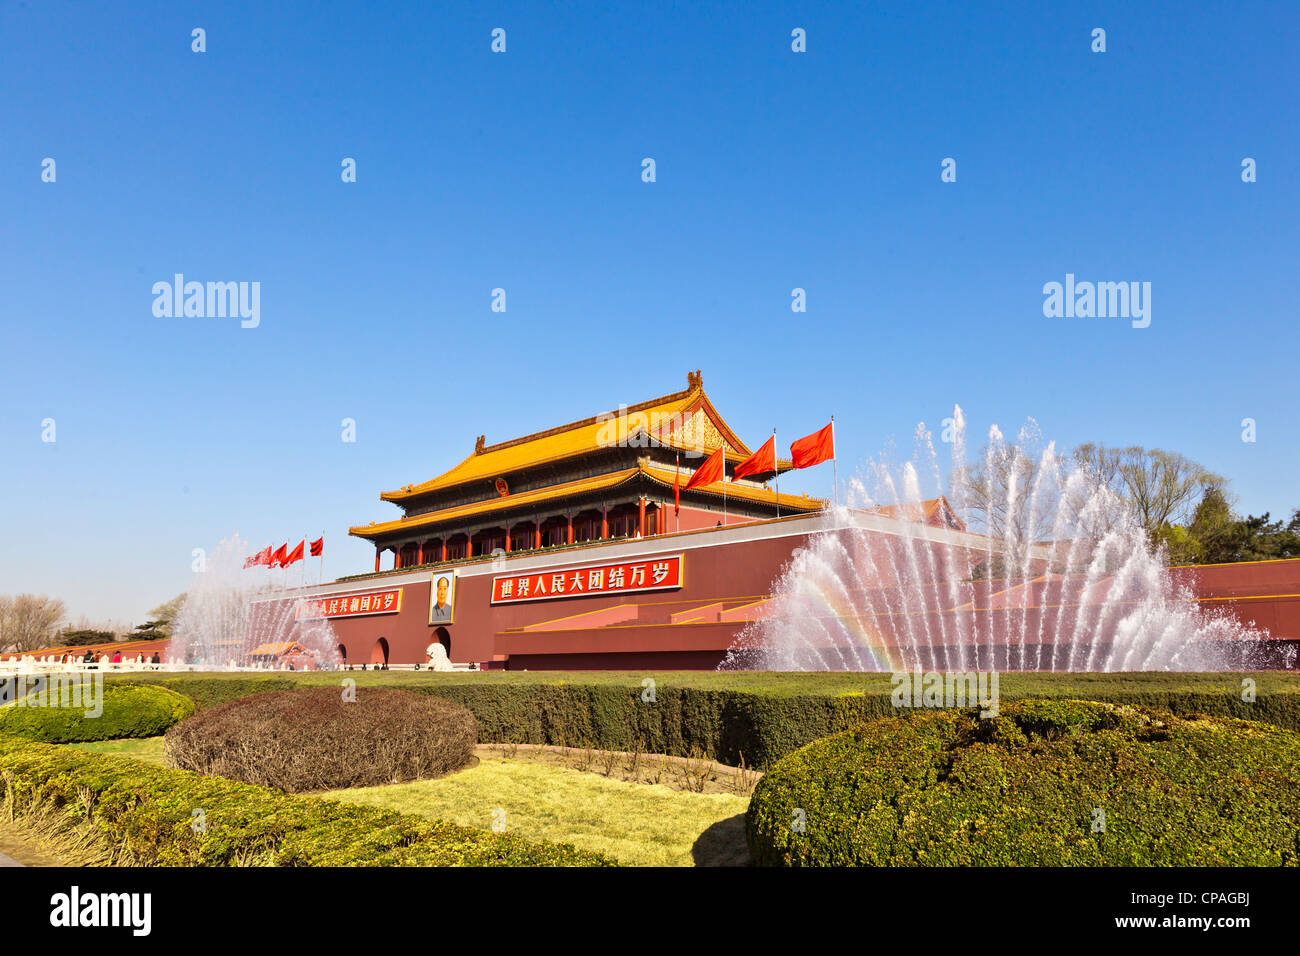 Tian'anmen, the Gate of Heavenly Peace, south of the Forbidden City in Beijing, China, seen on a bright morning - Stock Image